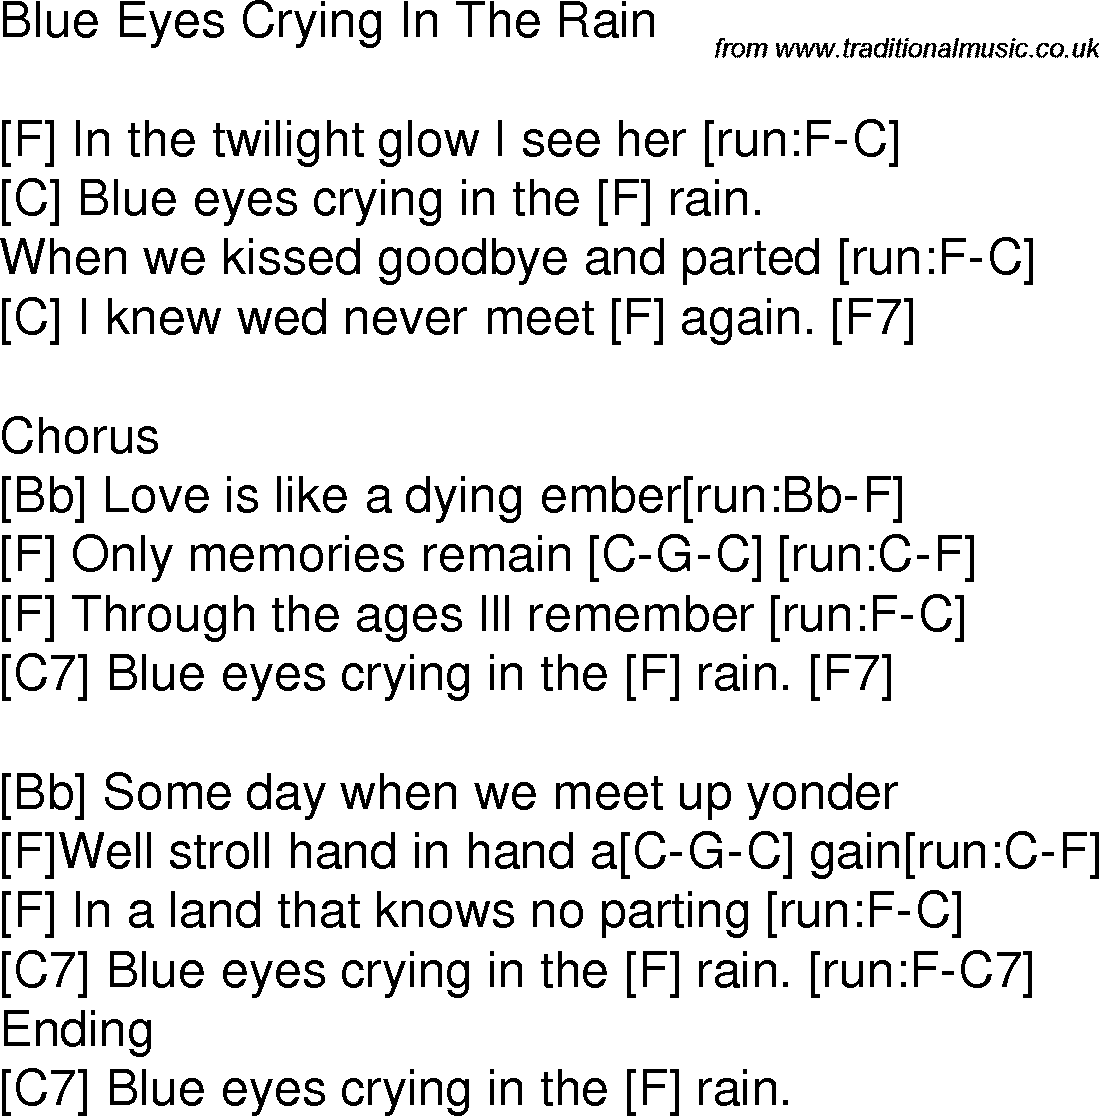 Old Time Song Lyrics With Guitar Chords For Blue Eyes Crying In The